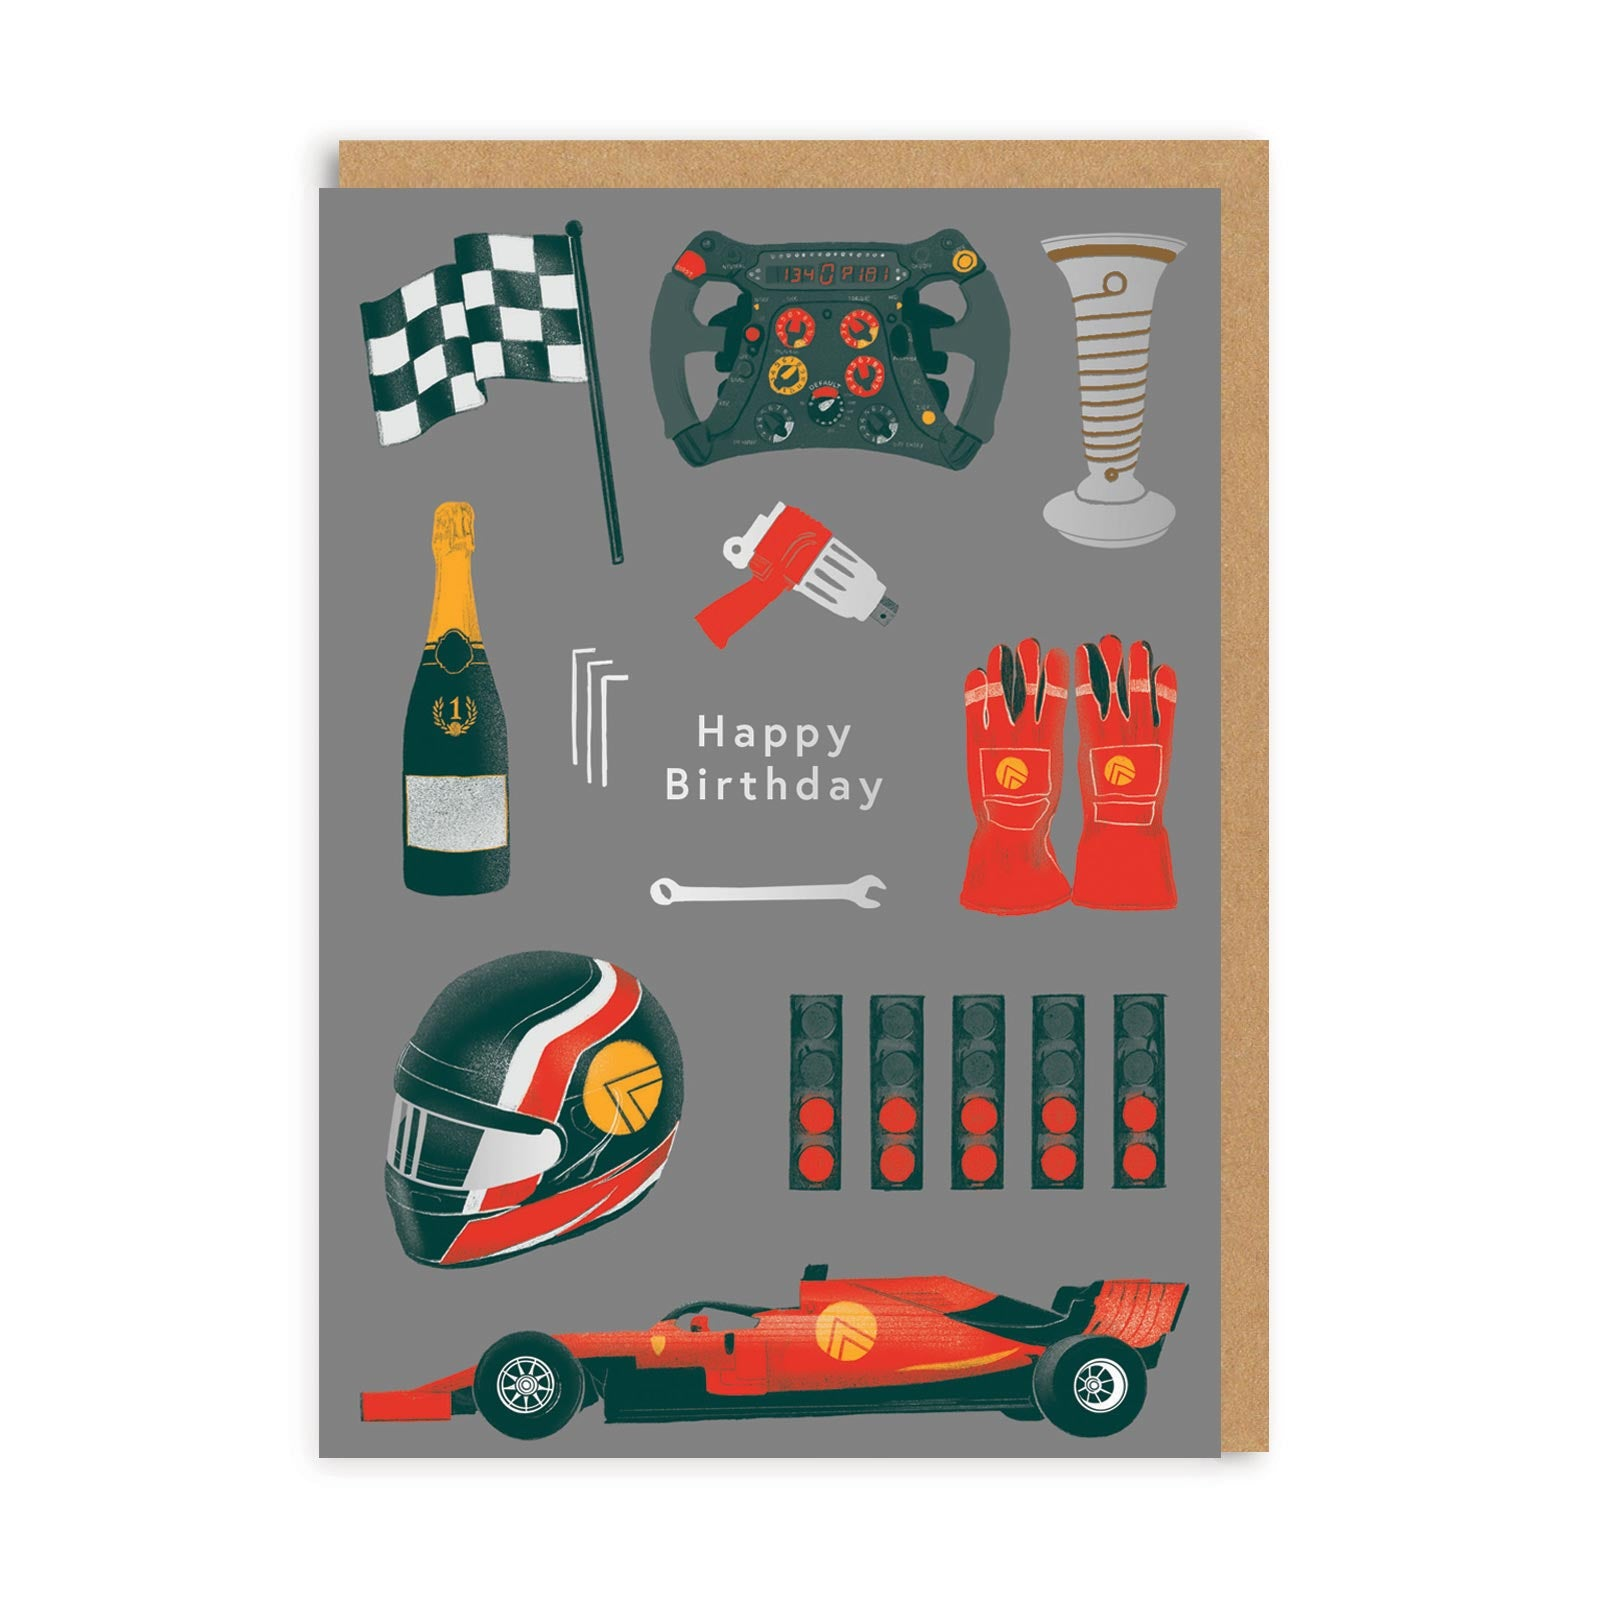 Happy Birthday F1 Greeting Card